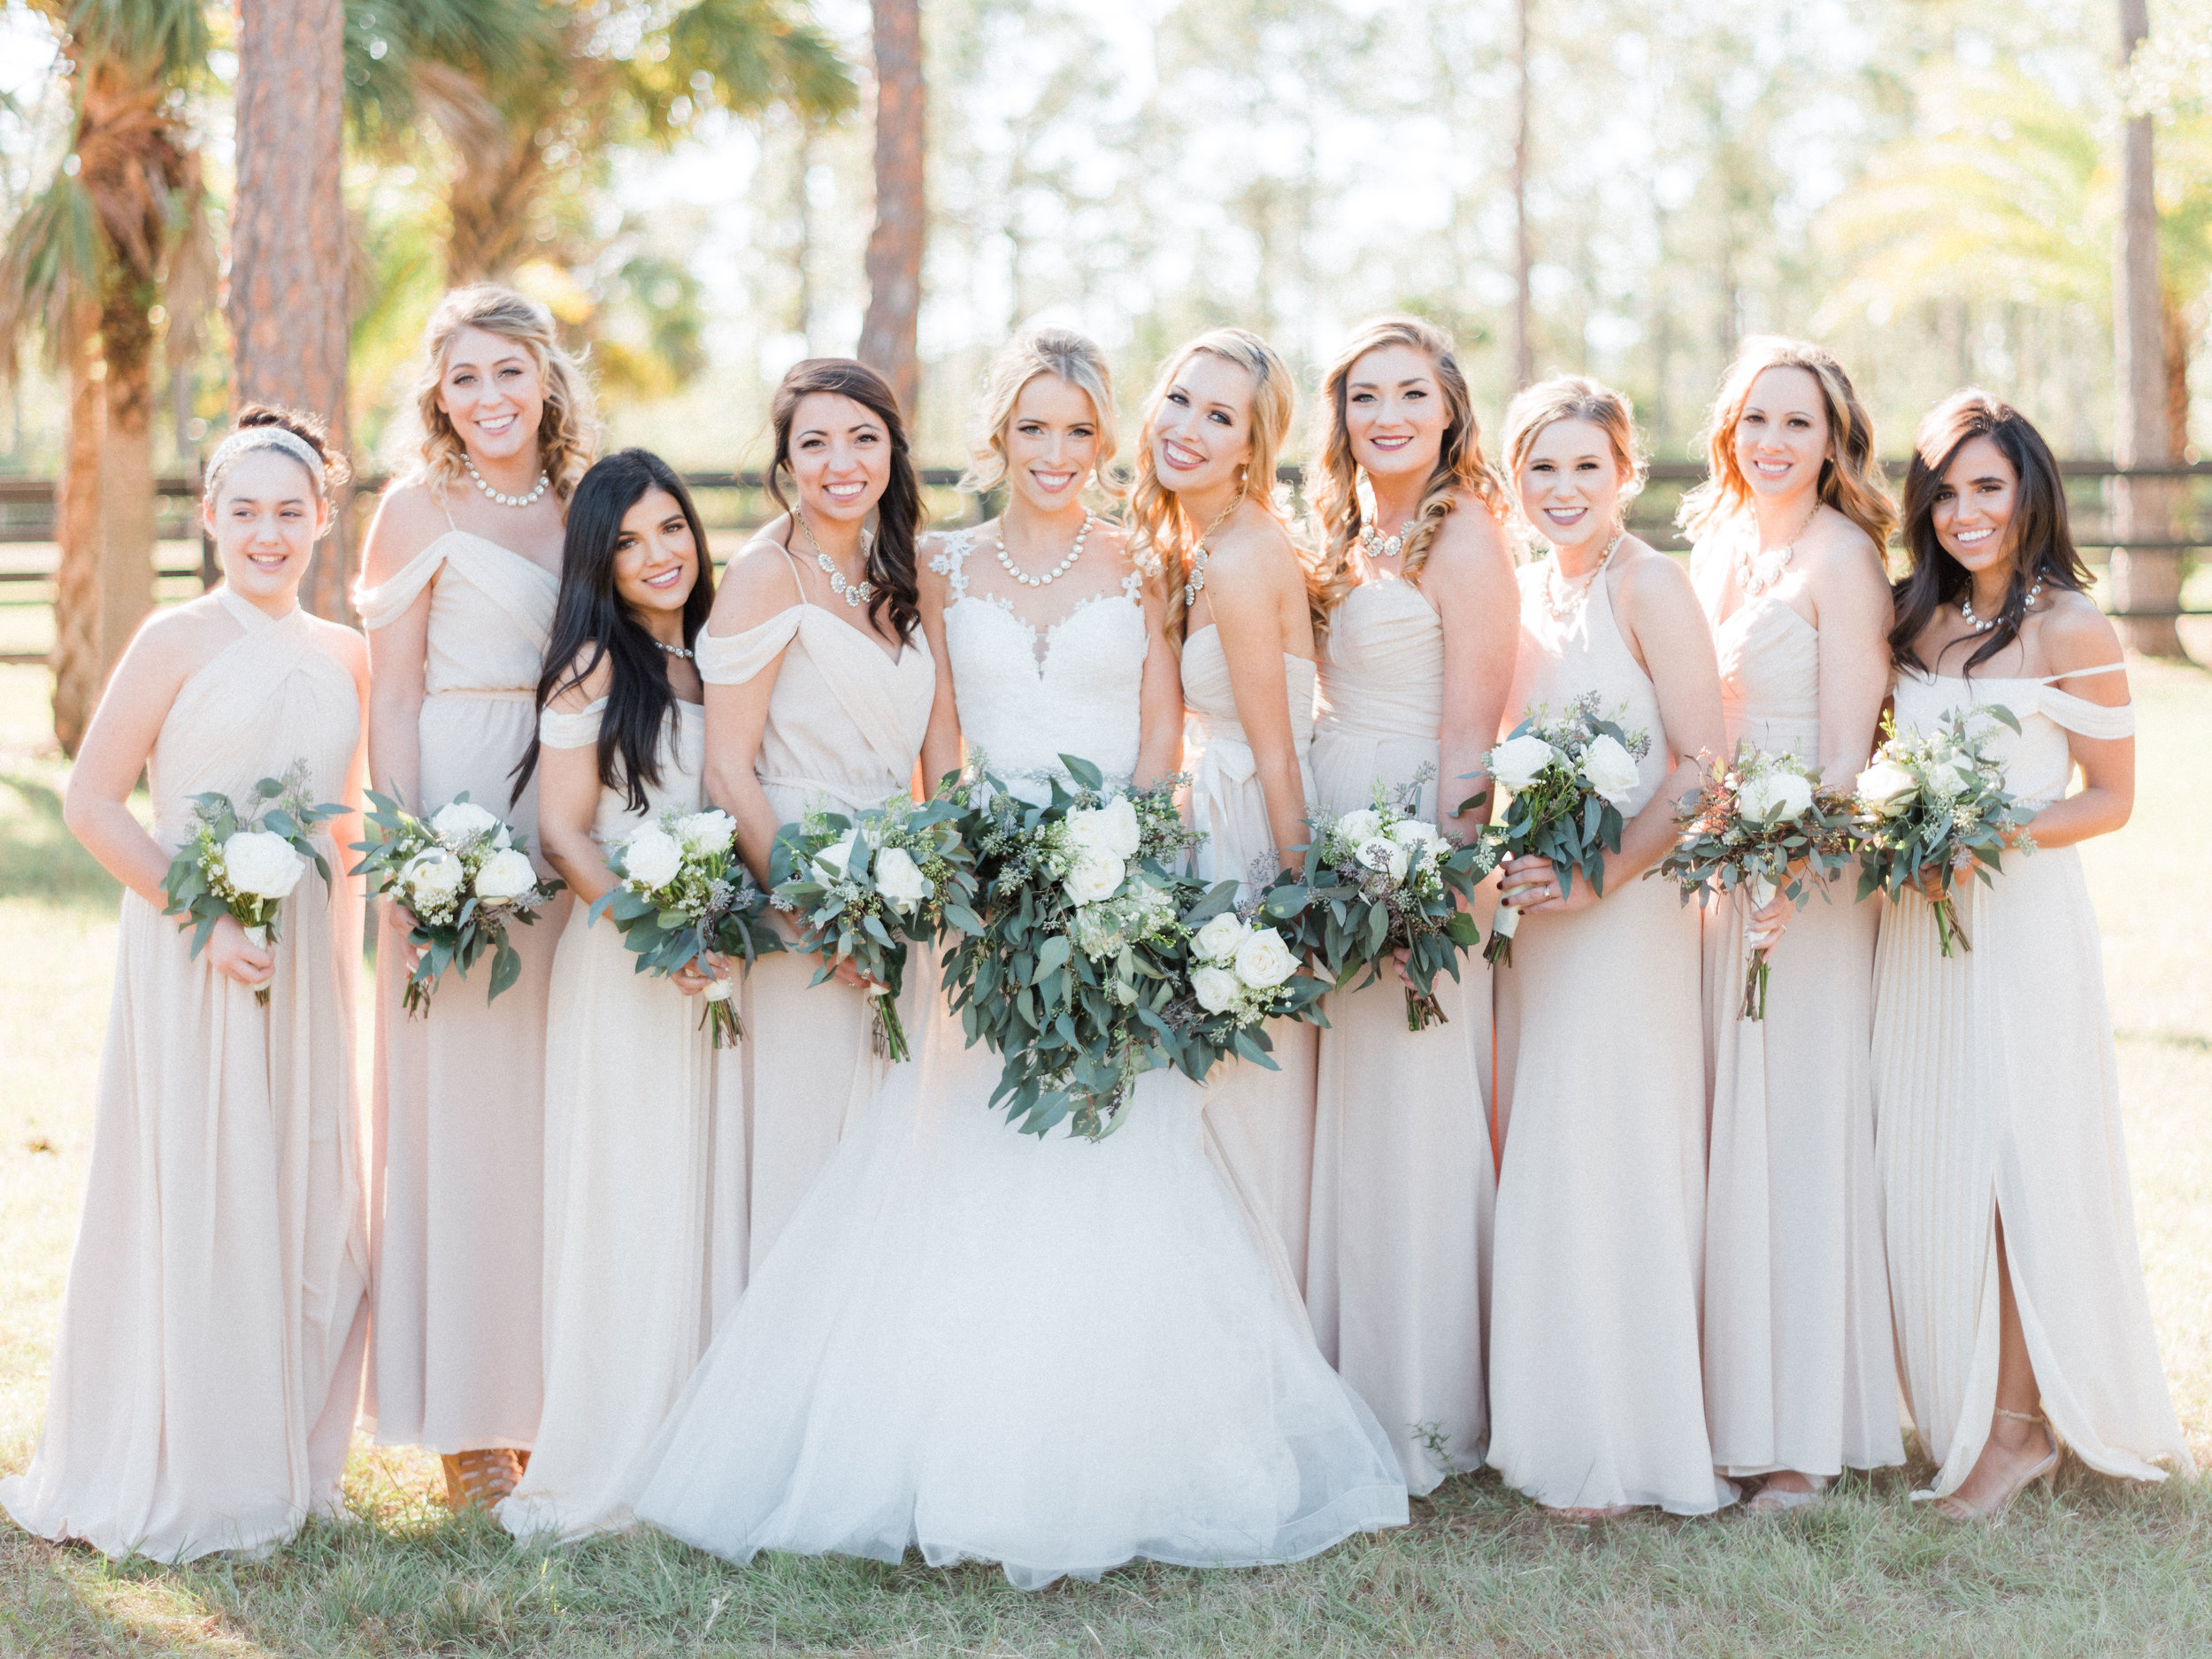 bridal-party-bridesmaids-florida-wedding-fort-myers-la-casa-toscana-outdoor-ceremony-winter-wedding-brown-chairs-white-gazebo-planned-by-mostly-becky-weddings-traveling-wedding-planner-destination-wedding-lakeside-bridal-portraits-bride-groom-black-tie-tux-formal-wedding